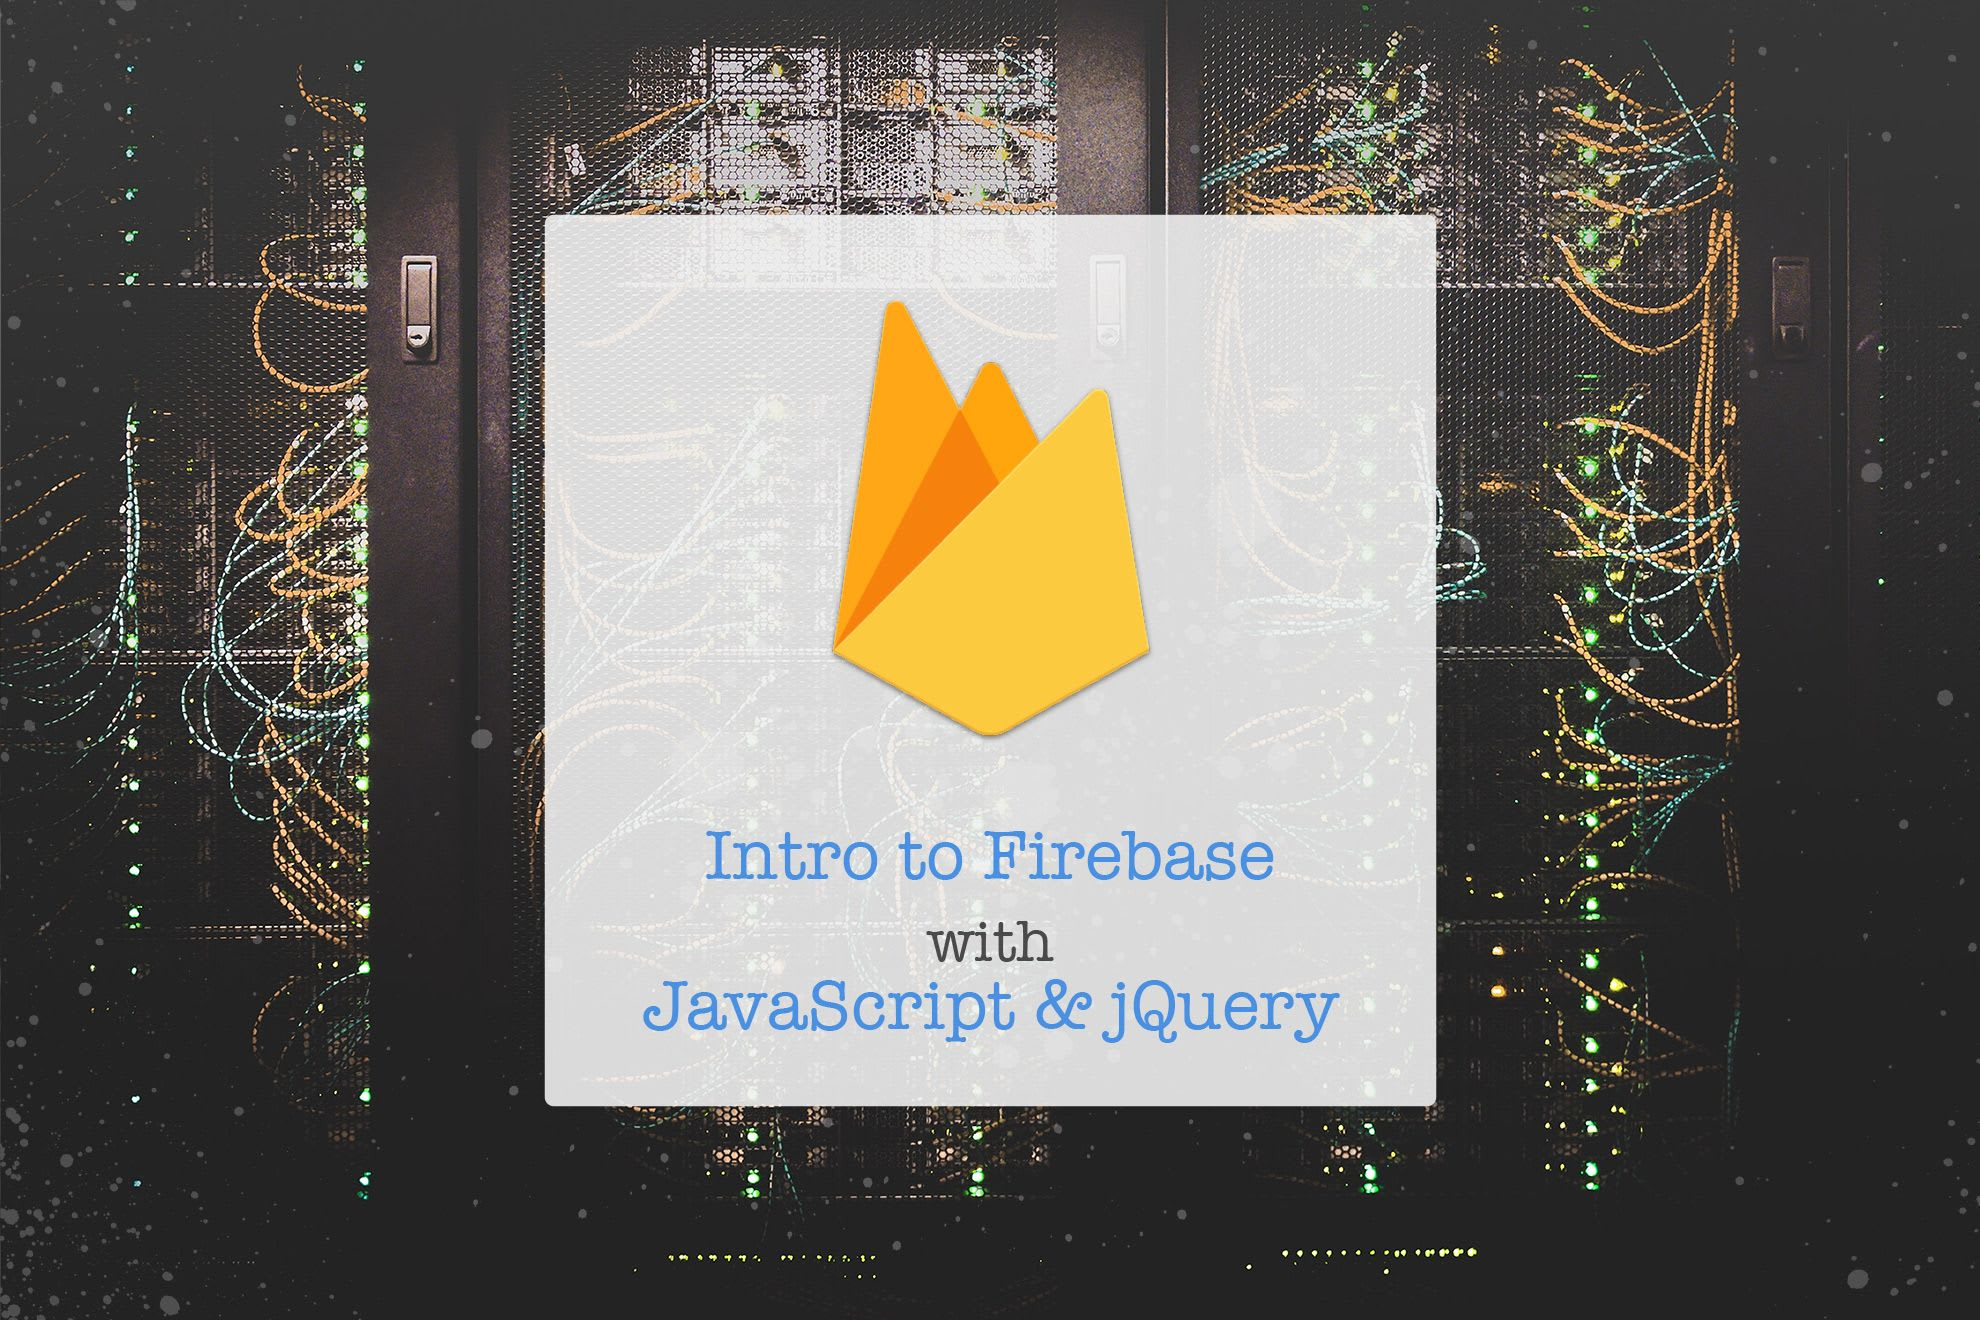 Intro to Firebase with JavaScript and jQuery